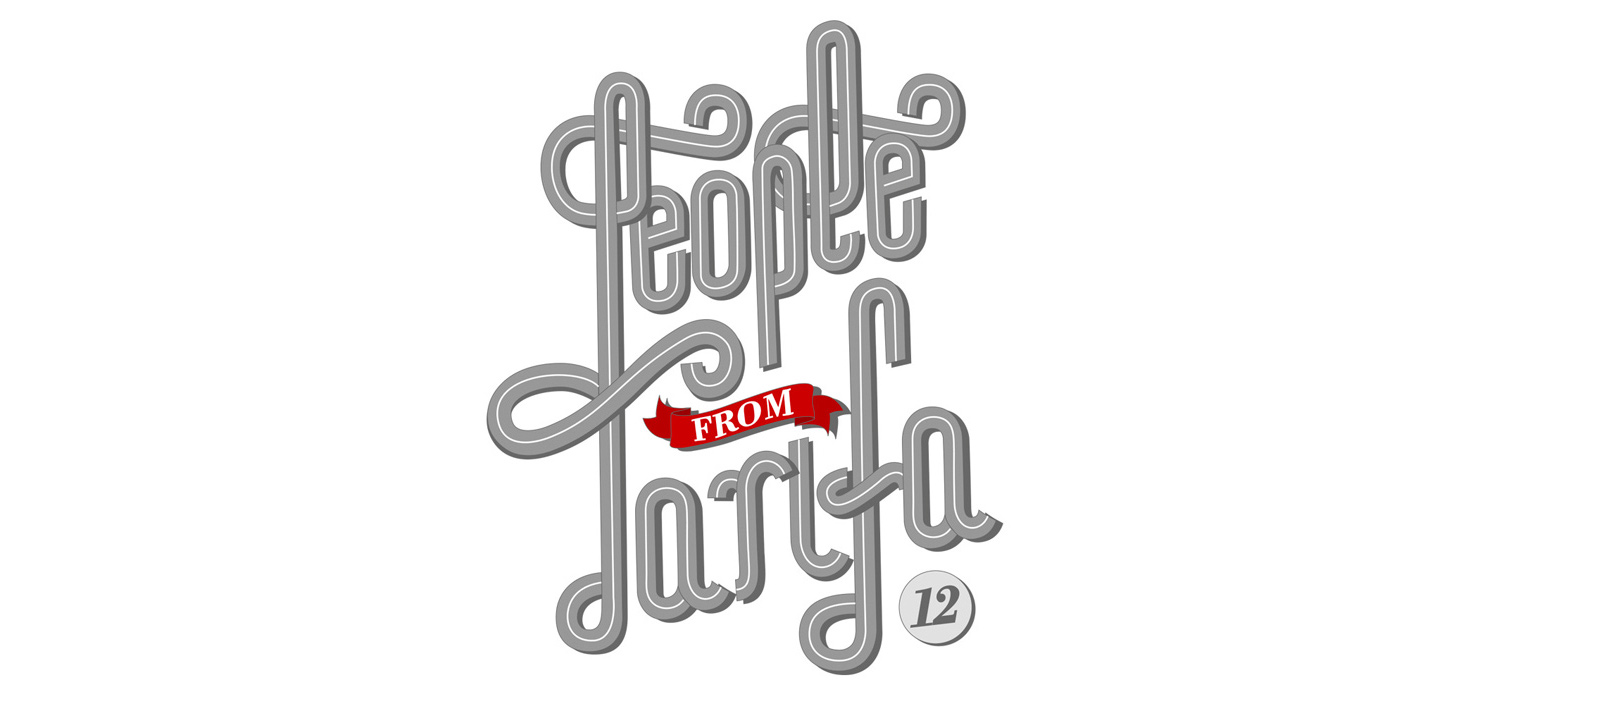 people-from-tarifa-logo-rk-estudio